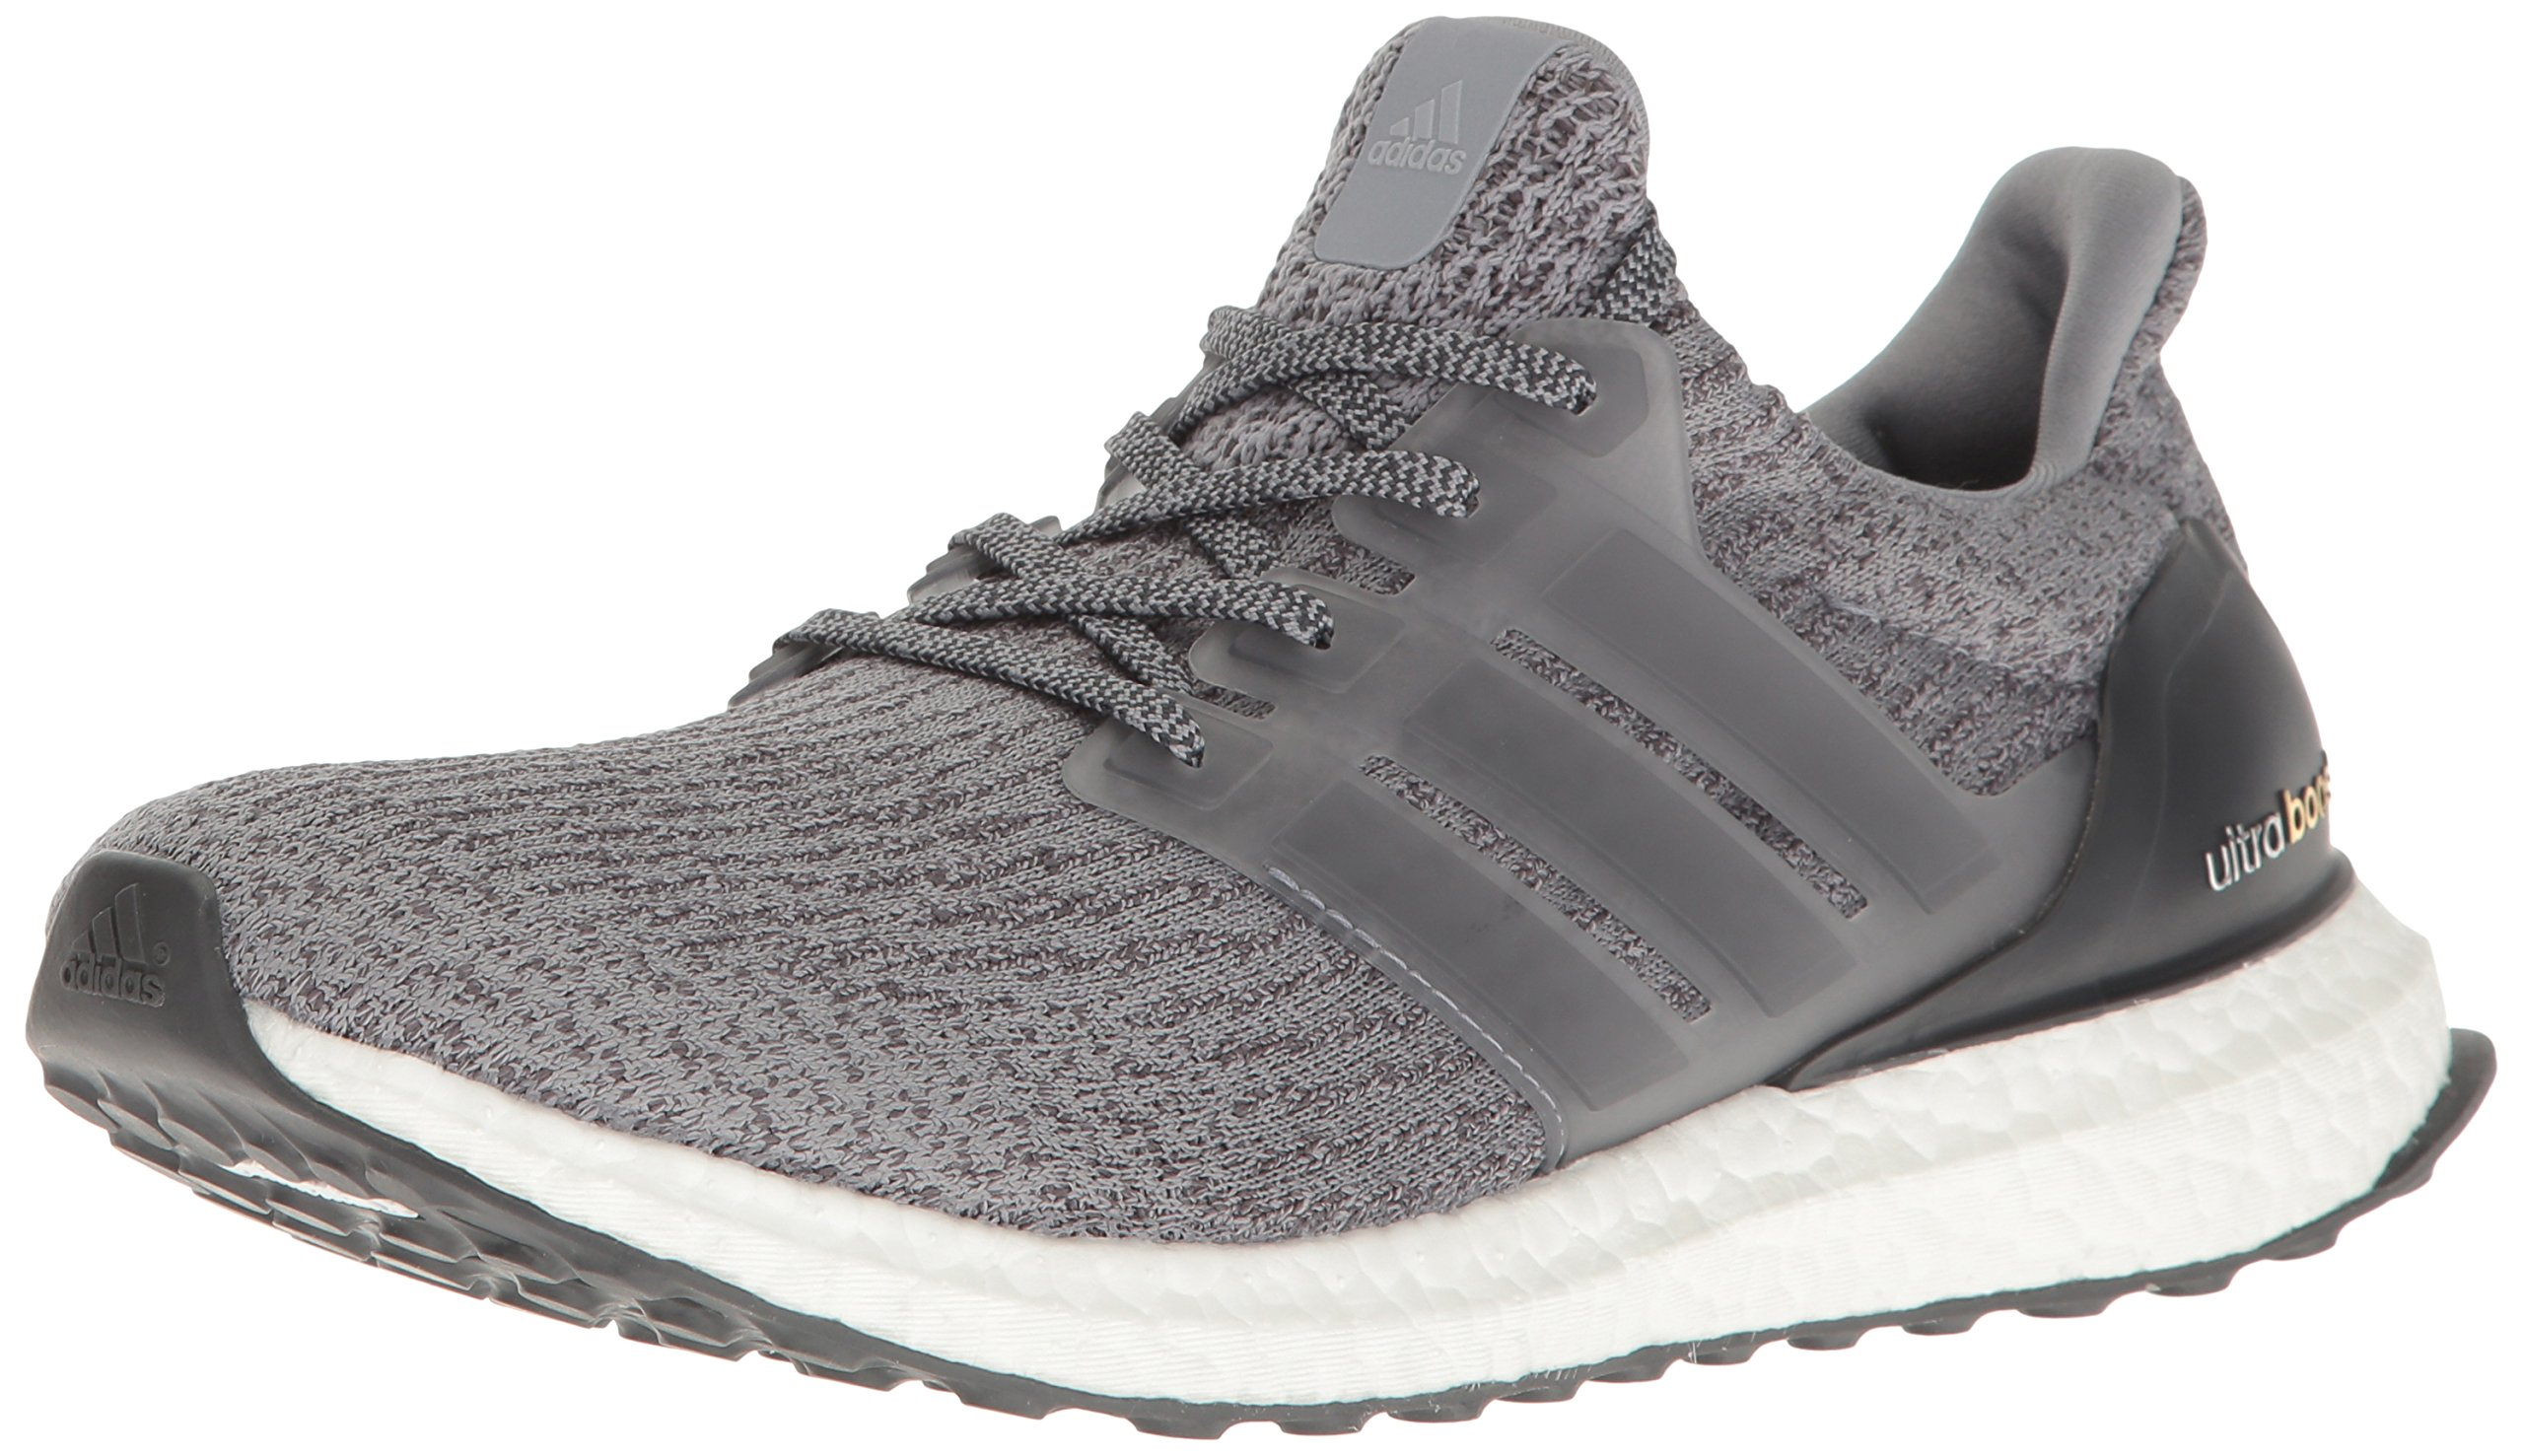 adidas Performance Men's Ultraboost Running Shoe, GreyGreyDark Grey Heather, 9 M US